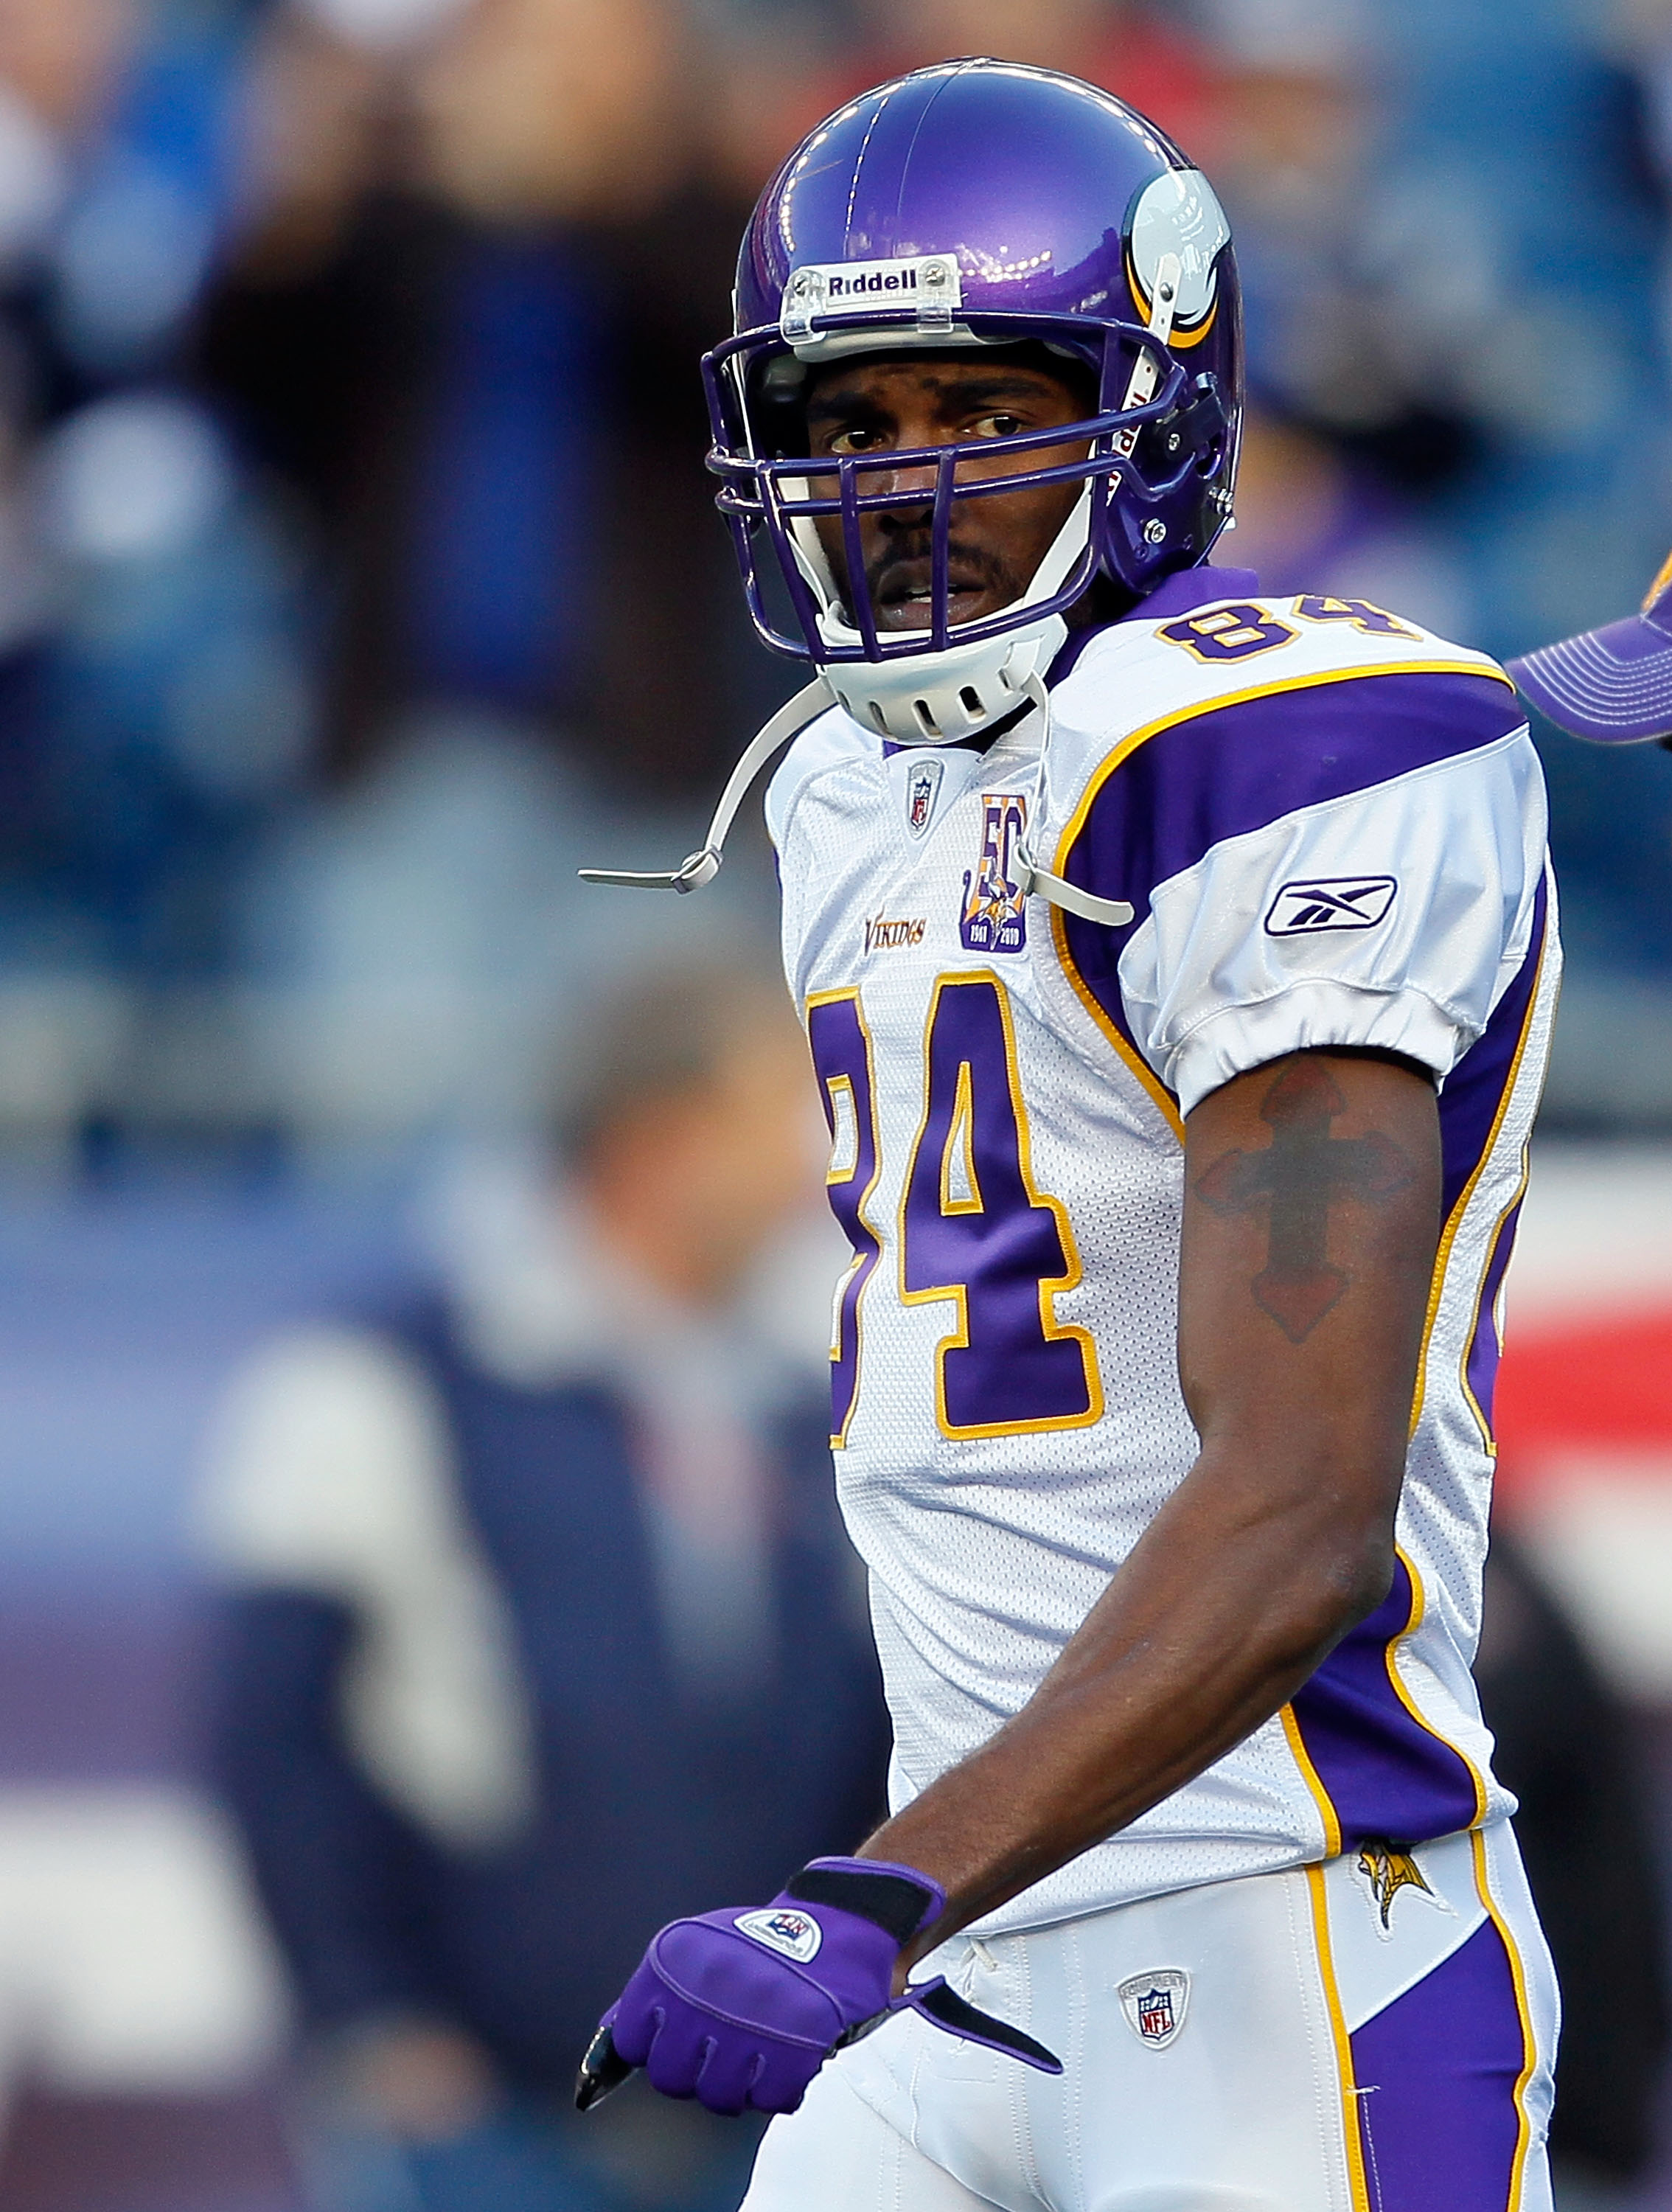 After his release from Minnesota, Randy Moss looks to join his fourth career NFL team, and his third this year.